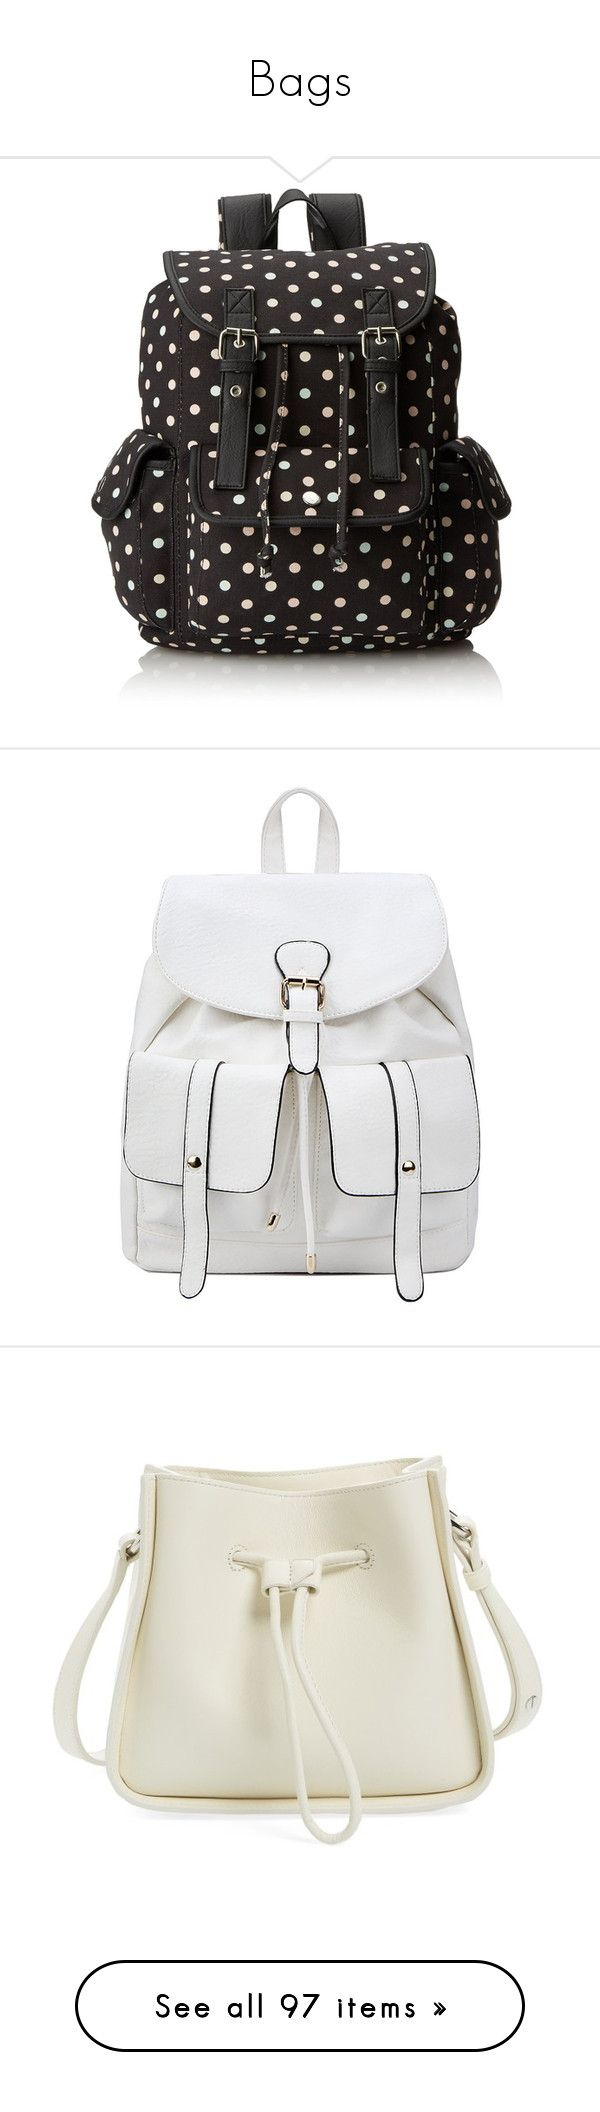 """""""Bags"""" by v-aldina on Polyvore featuring bags, polyvorecollection, polyvorefashion, backpacks, accessories, purses, backpack bags, polka dot backpack, colorful backpacks and rucksack bags"""